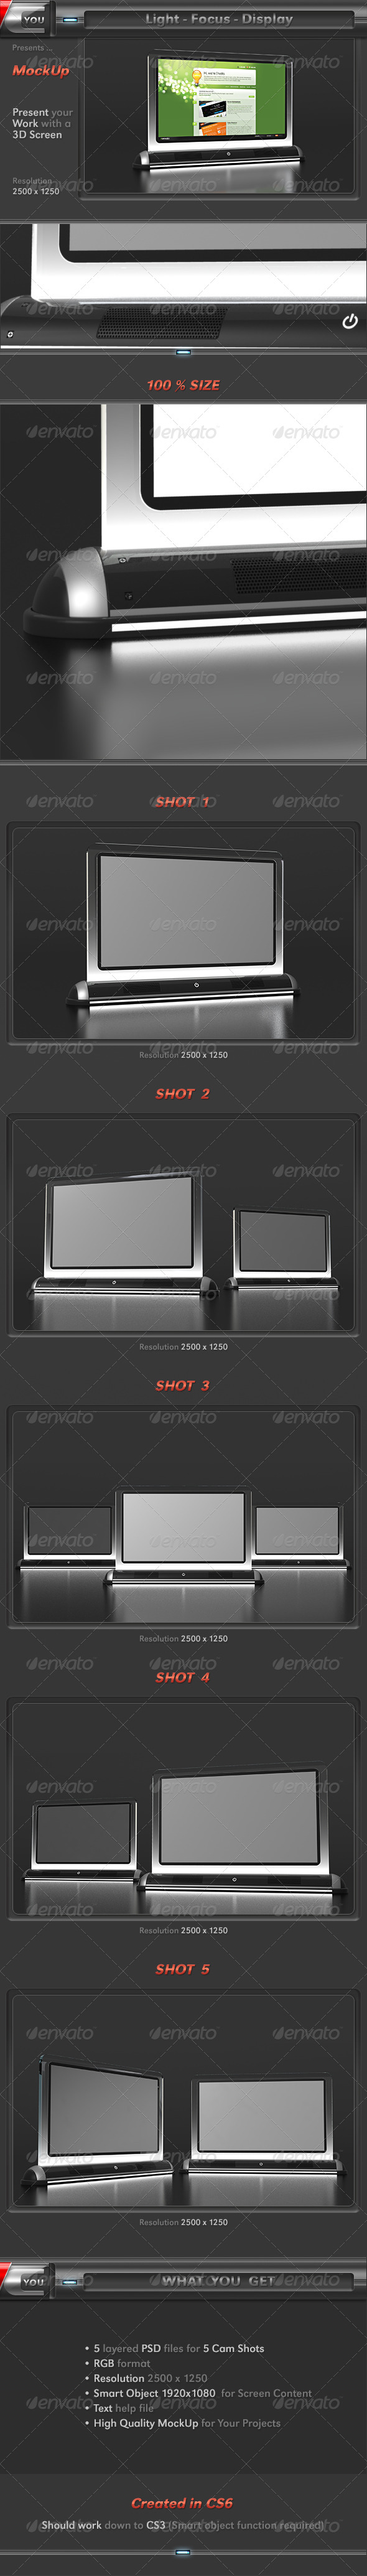 Light Focus Display Screen Mock-Up - Miscellaneous Displays